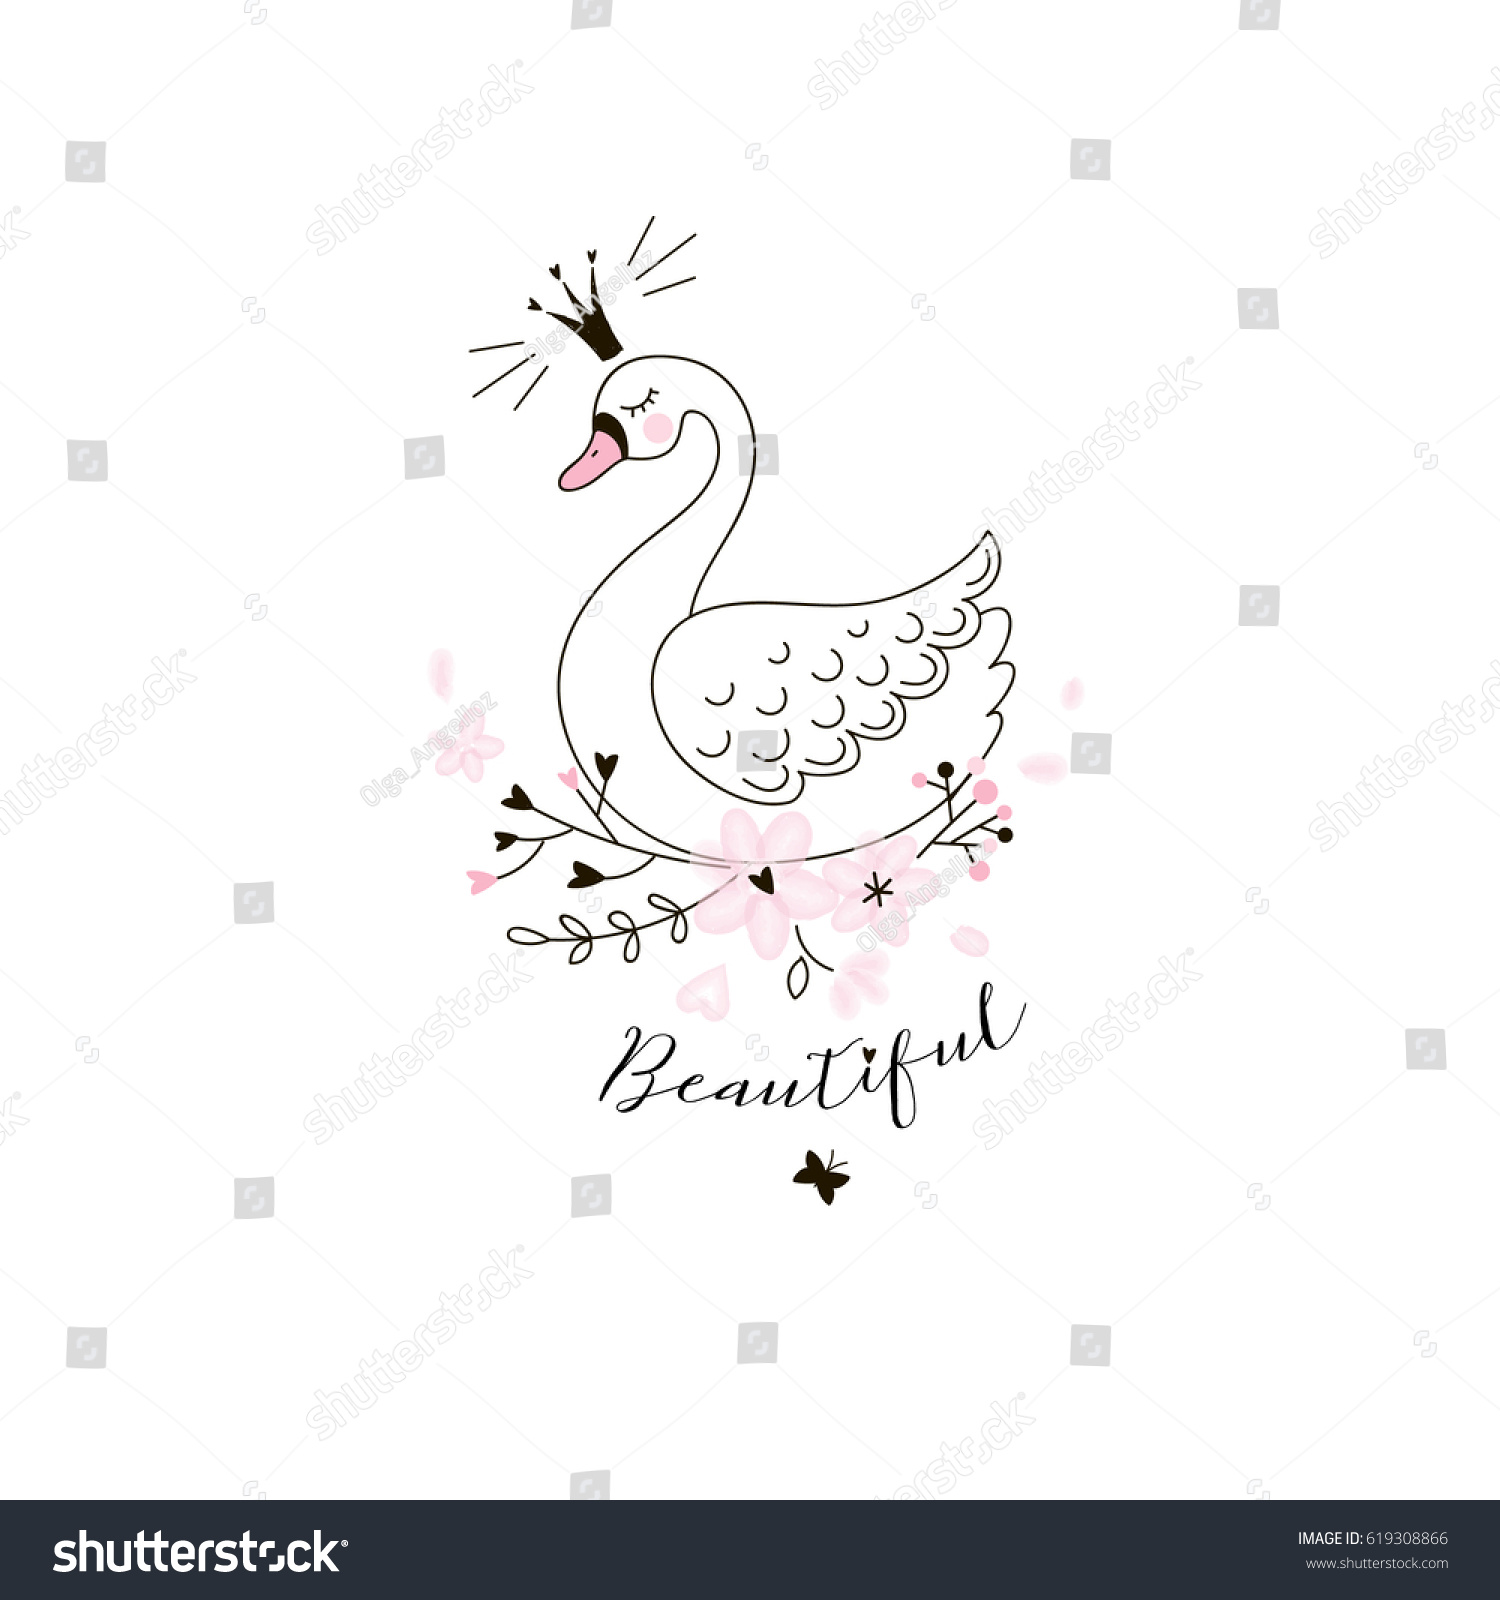 beautiful swan princess doodle illustration stock vector 619308866